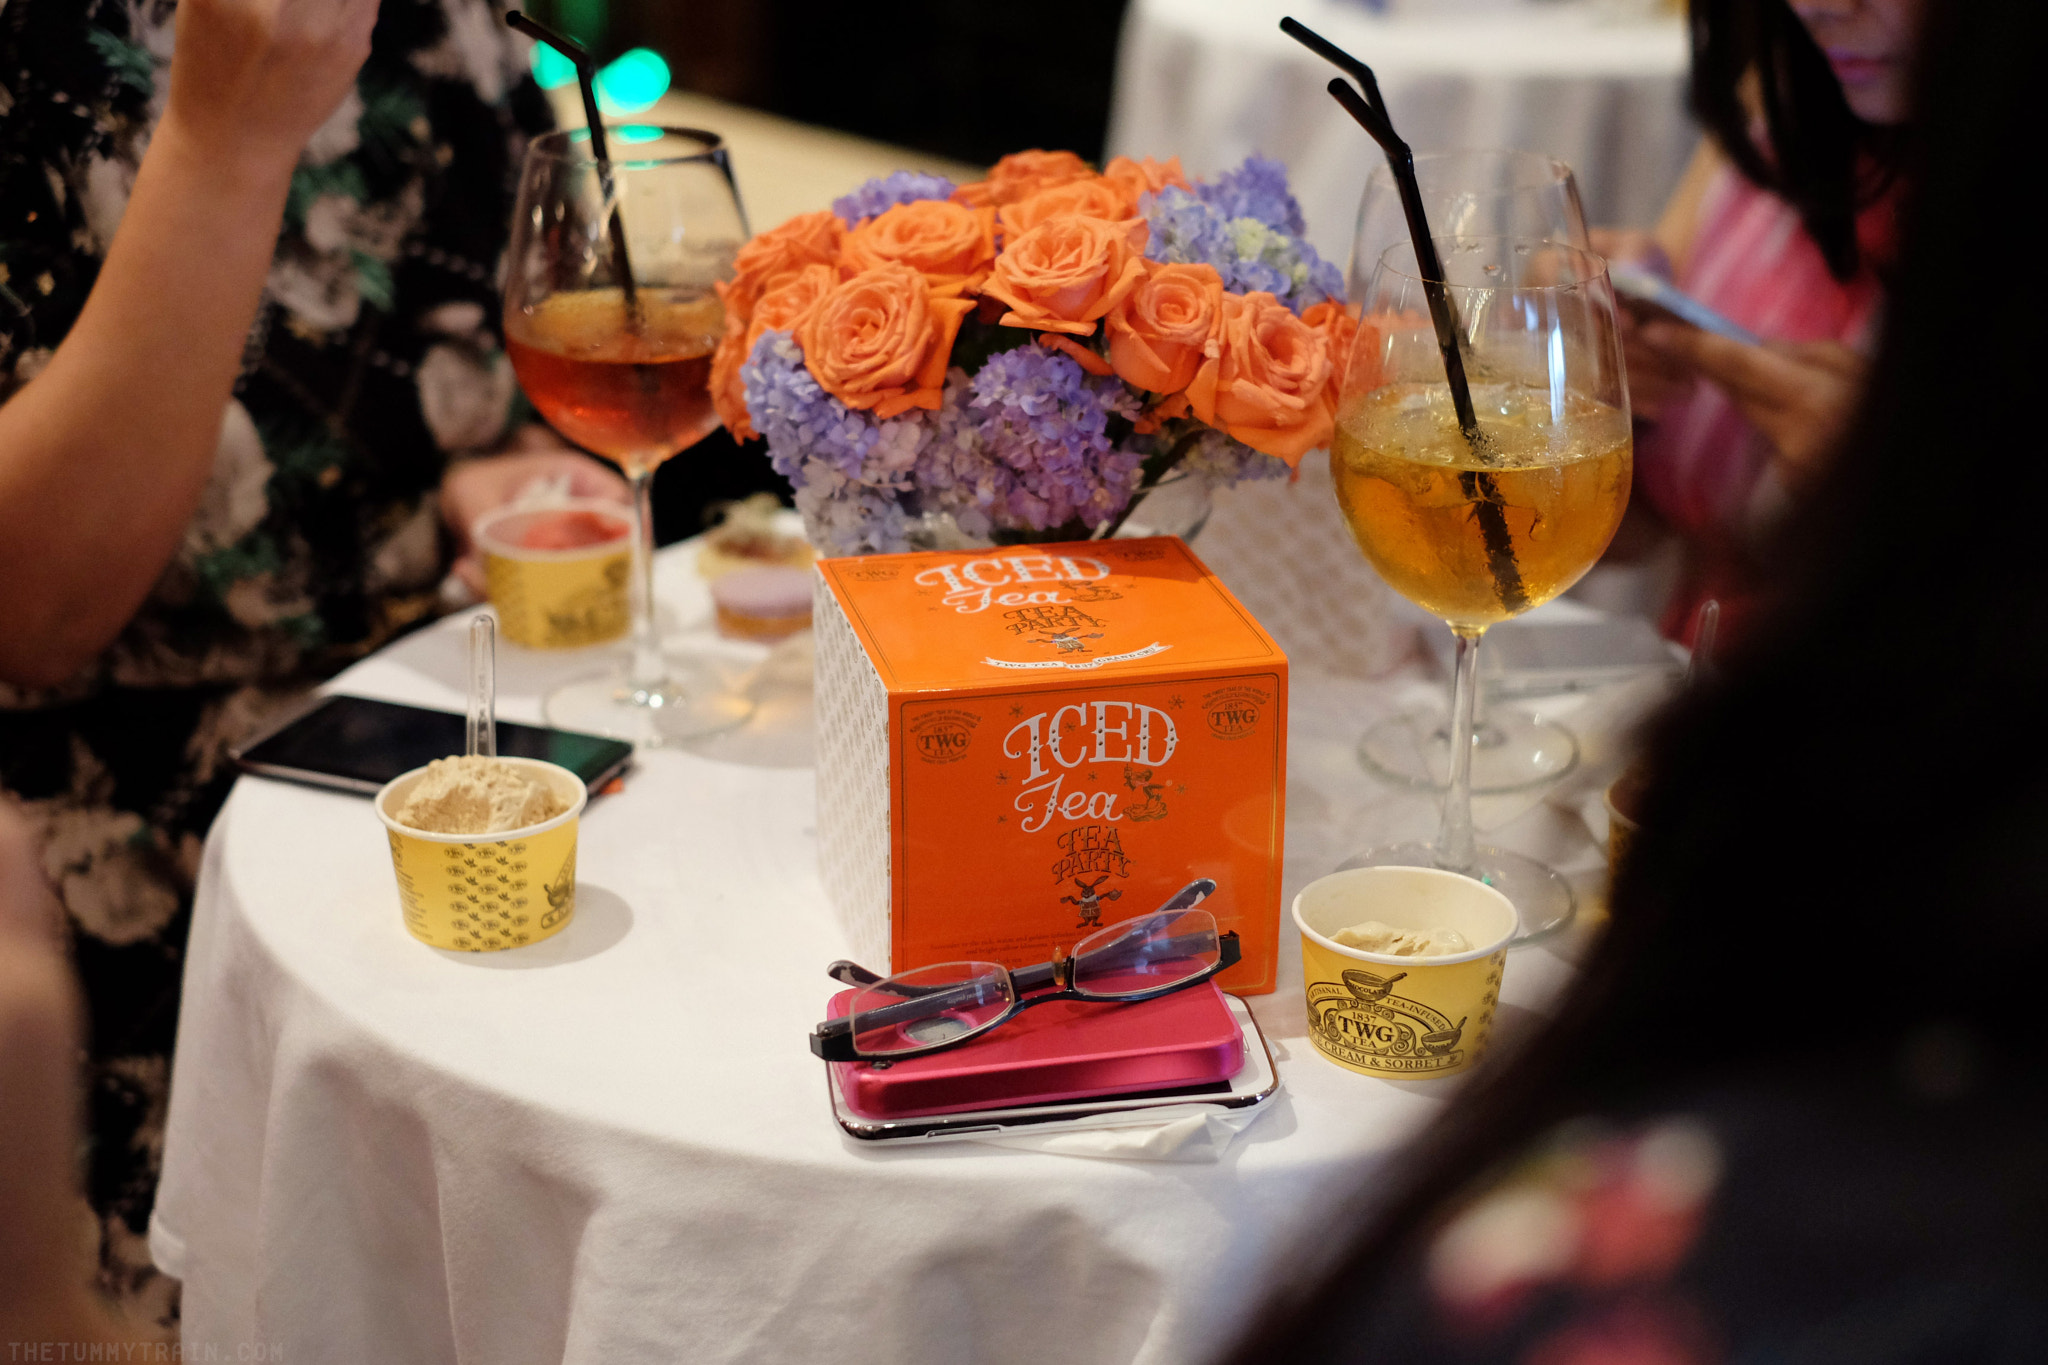 1e883e9103079eab4b220d740686bf42 - Beat the heat in luxurious style with the new TWG Iced Teas